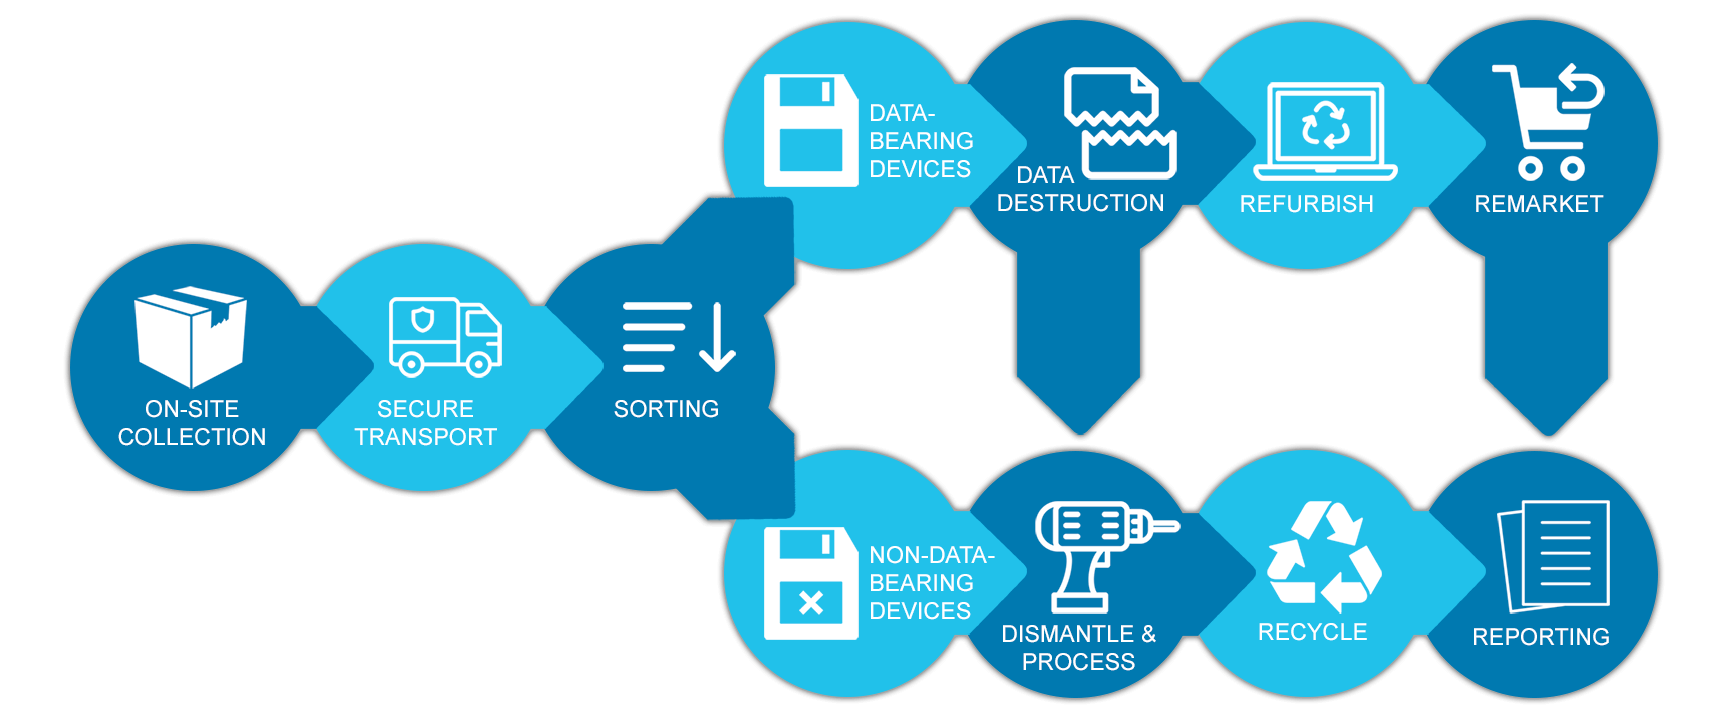 Secure data destruction and equipment recycling process